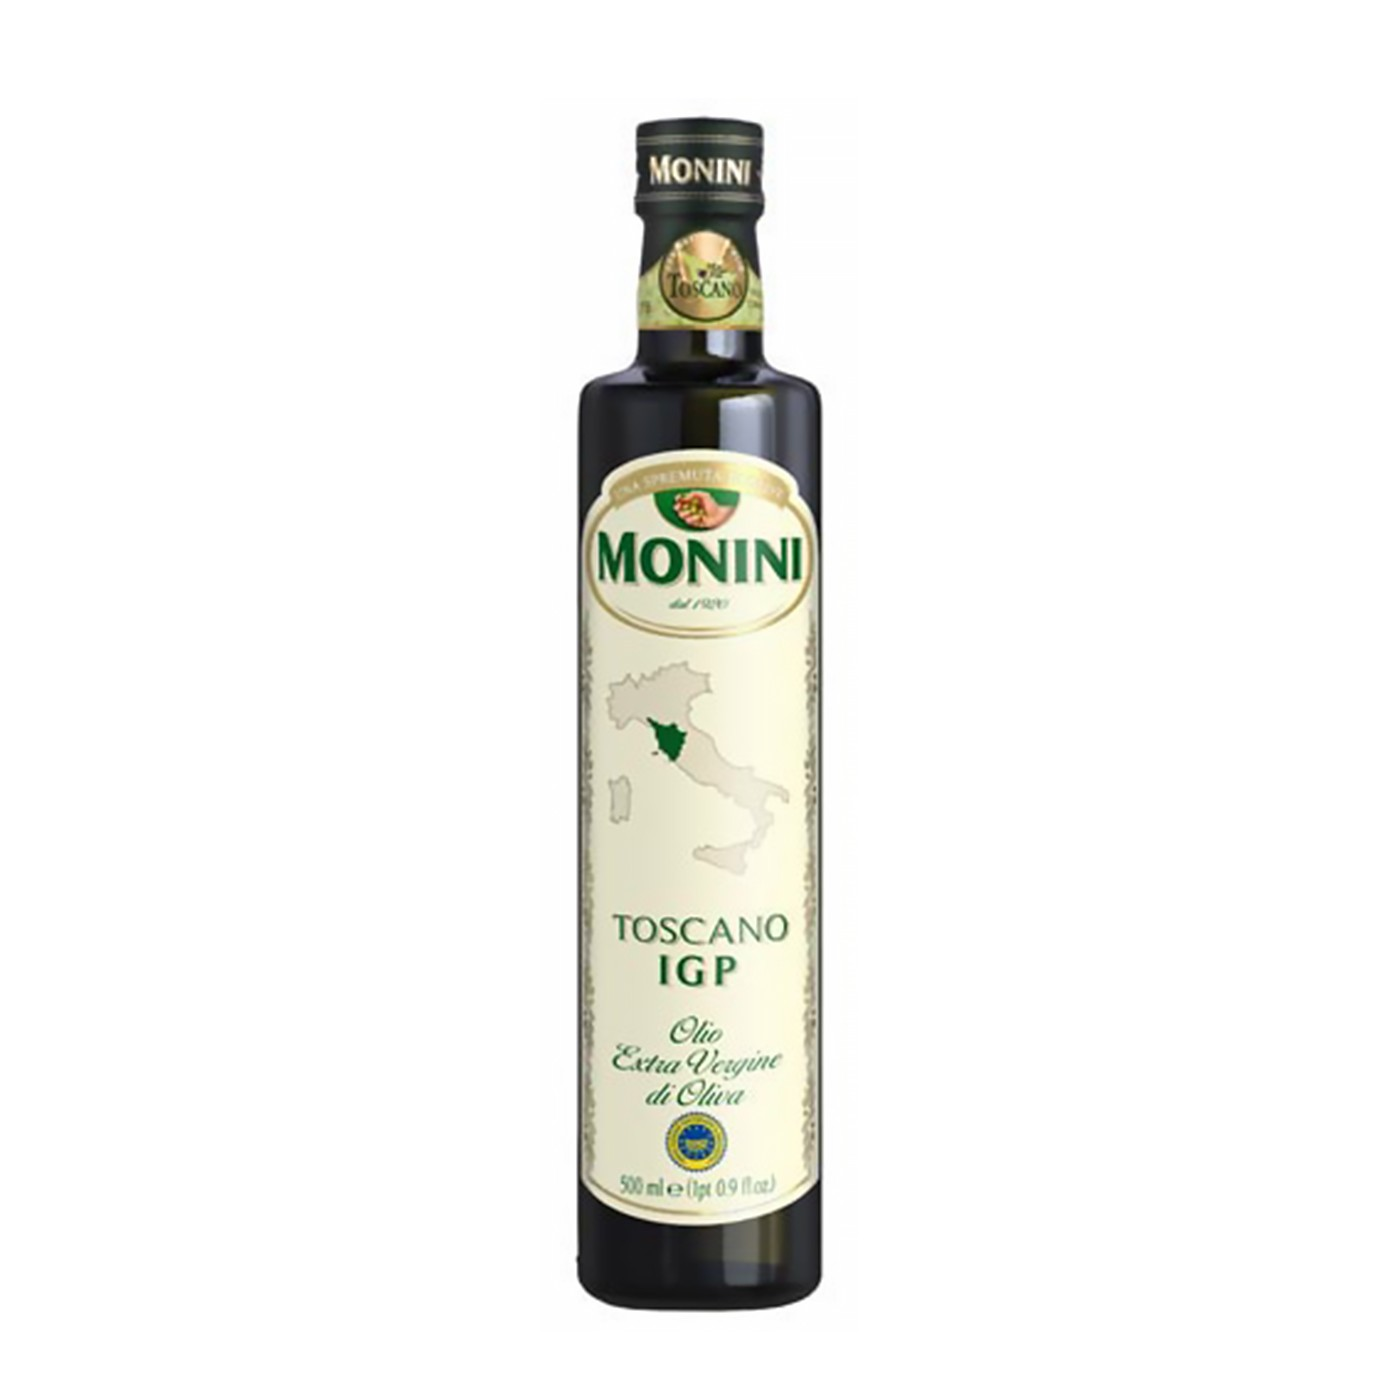 Toscano Extra Virgin Olive Oil IGP 16 oz